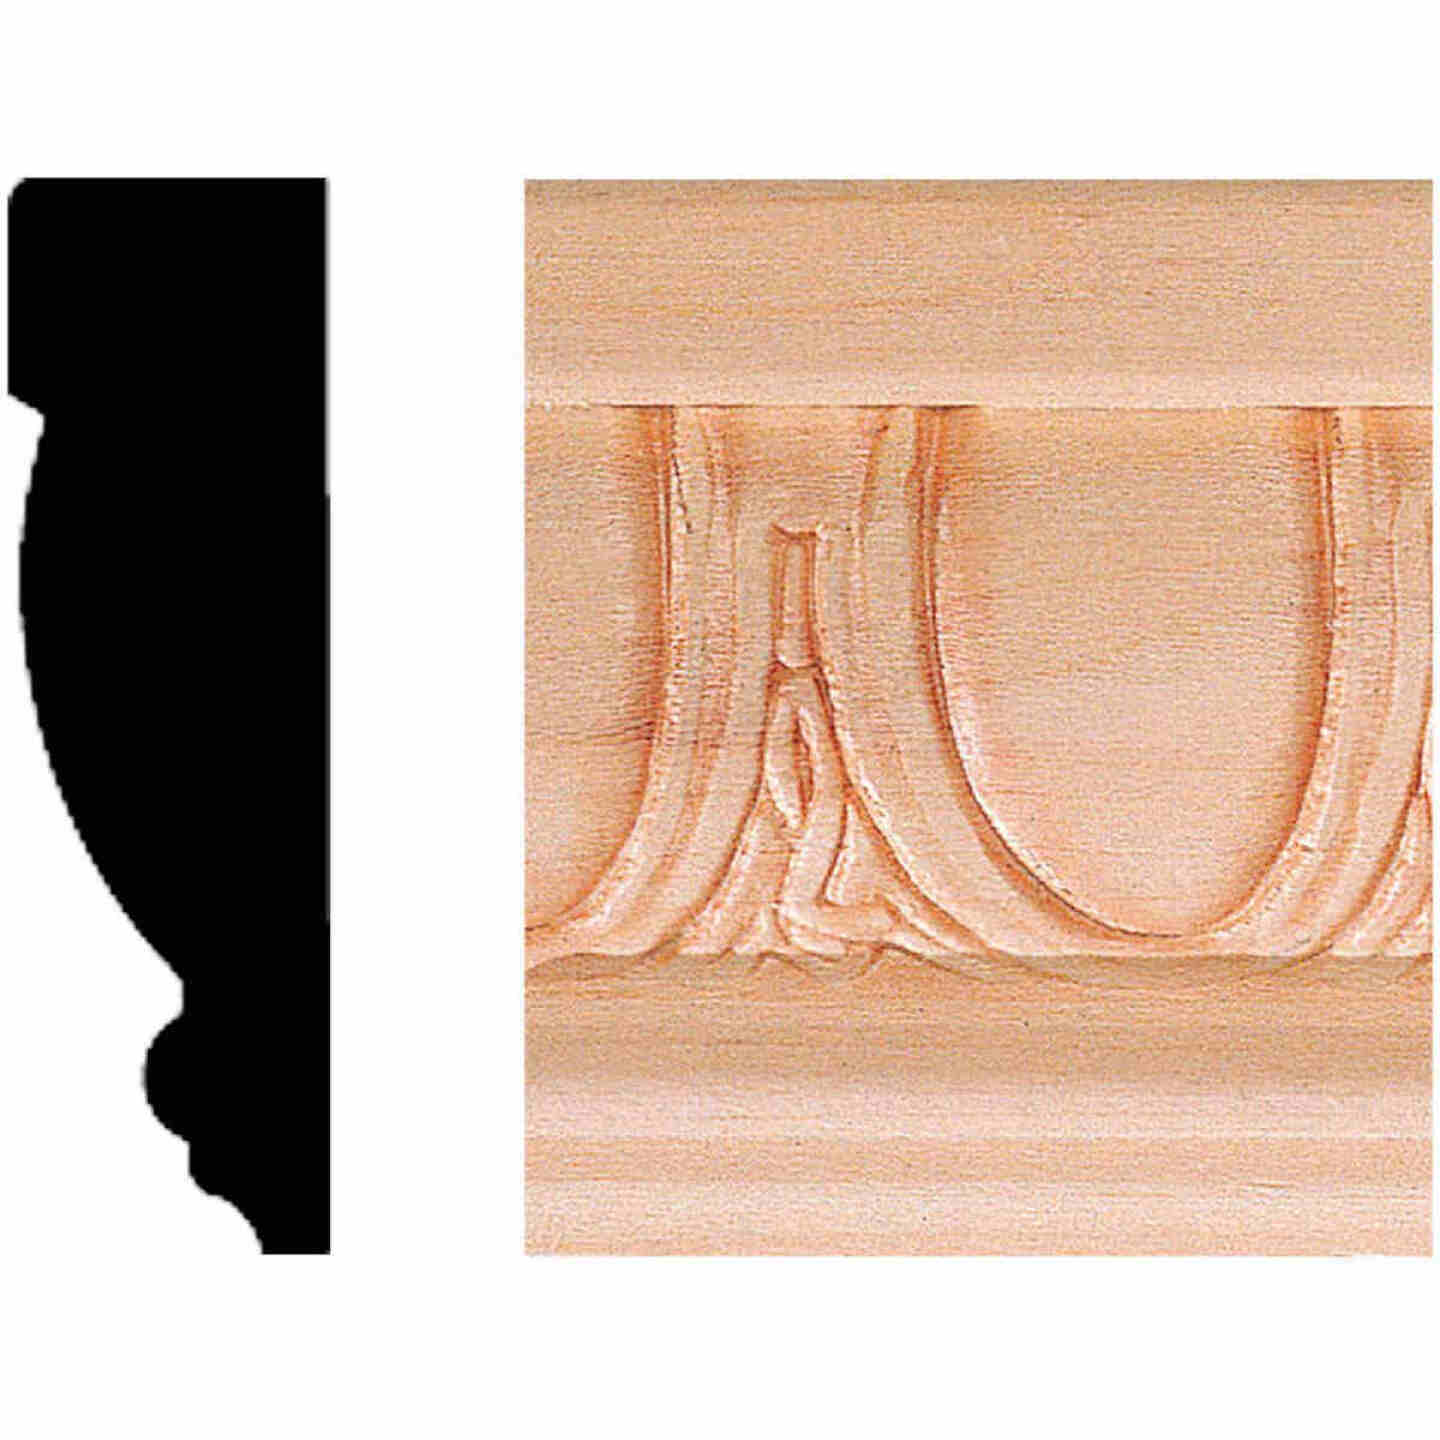 House of Fara 13/16 In. W. x 2-1/2 In. H. x 8 Ft. L. Hardwood Scrolled Decorative Chair Rail Molding Image 1